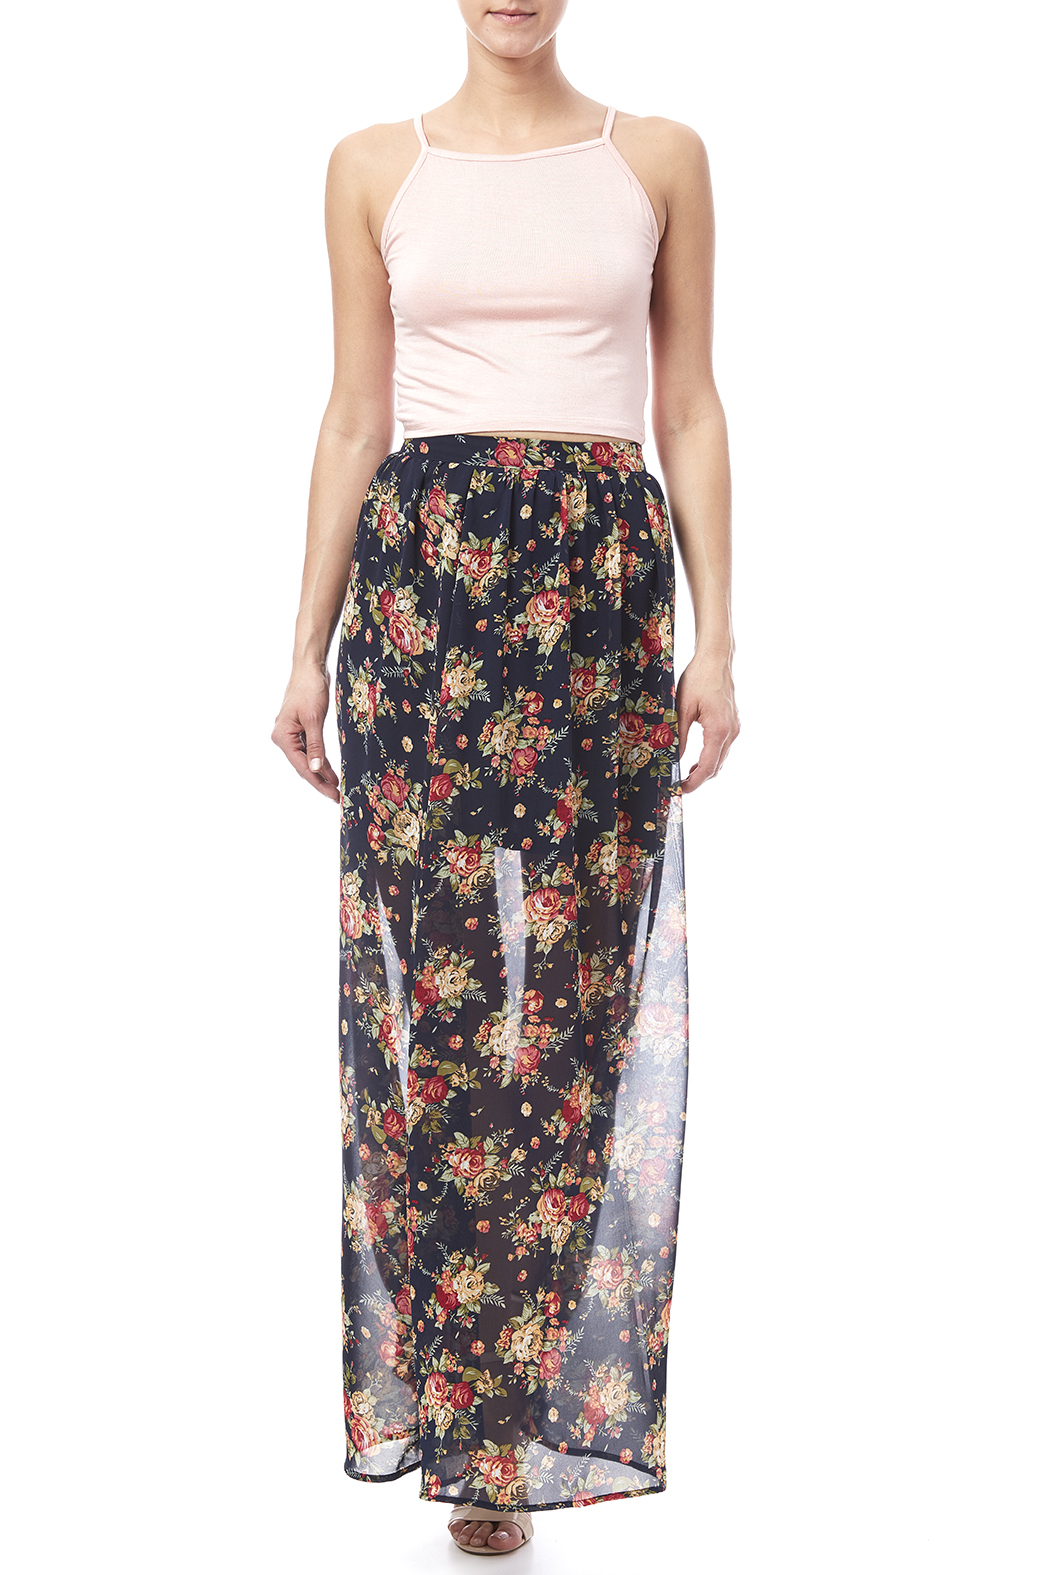 Ya Los Angeles Navy Floral Skirt - Front Full Image